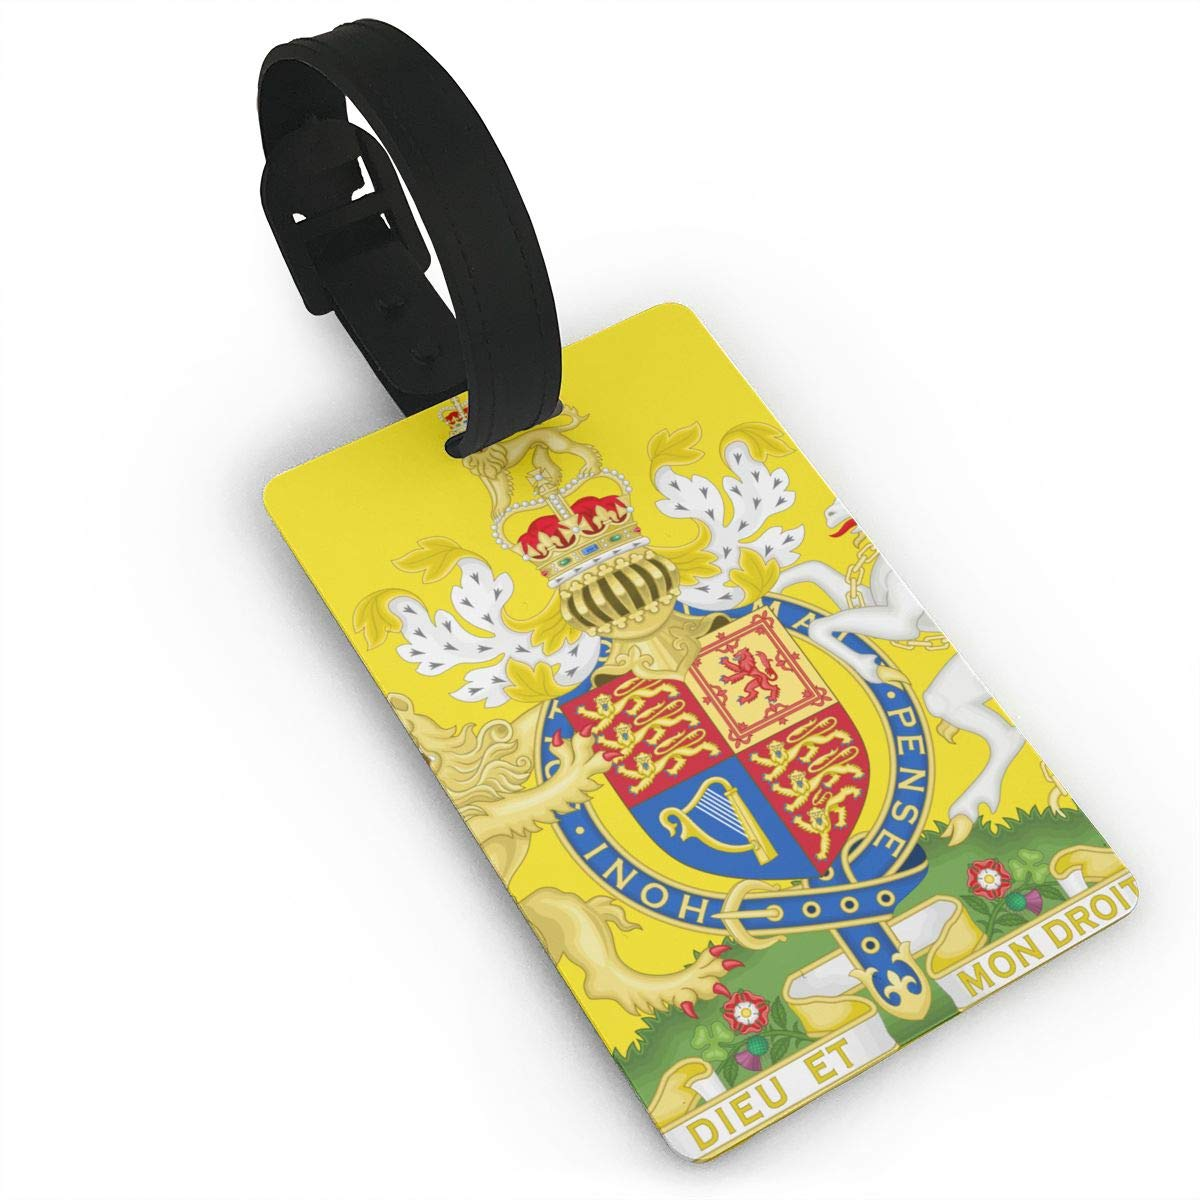 KODW12 Royal Coat of Arms of The United Kingdom Luggage Tag Travel Bag Labels Suitcase Bag Tag Name Address Cards by KODW12 (Image #1)